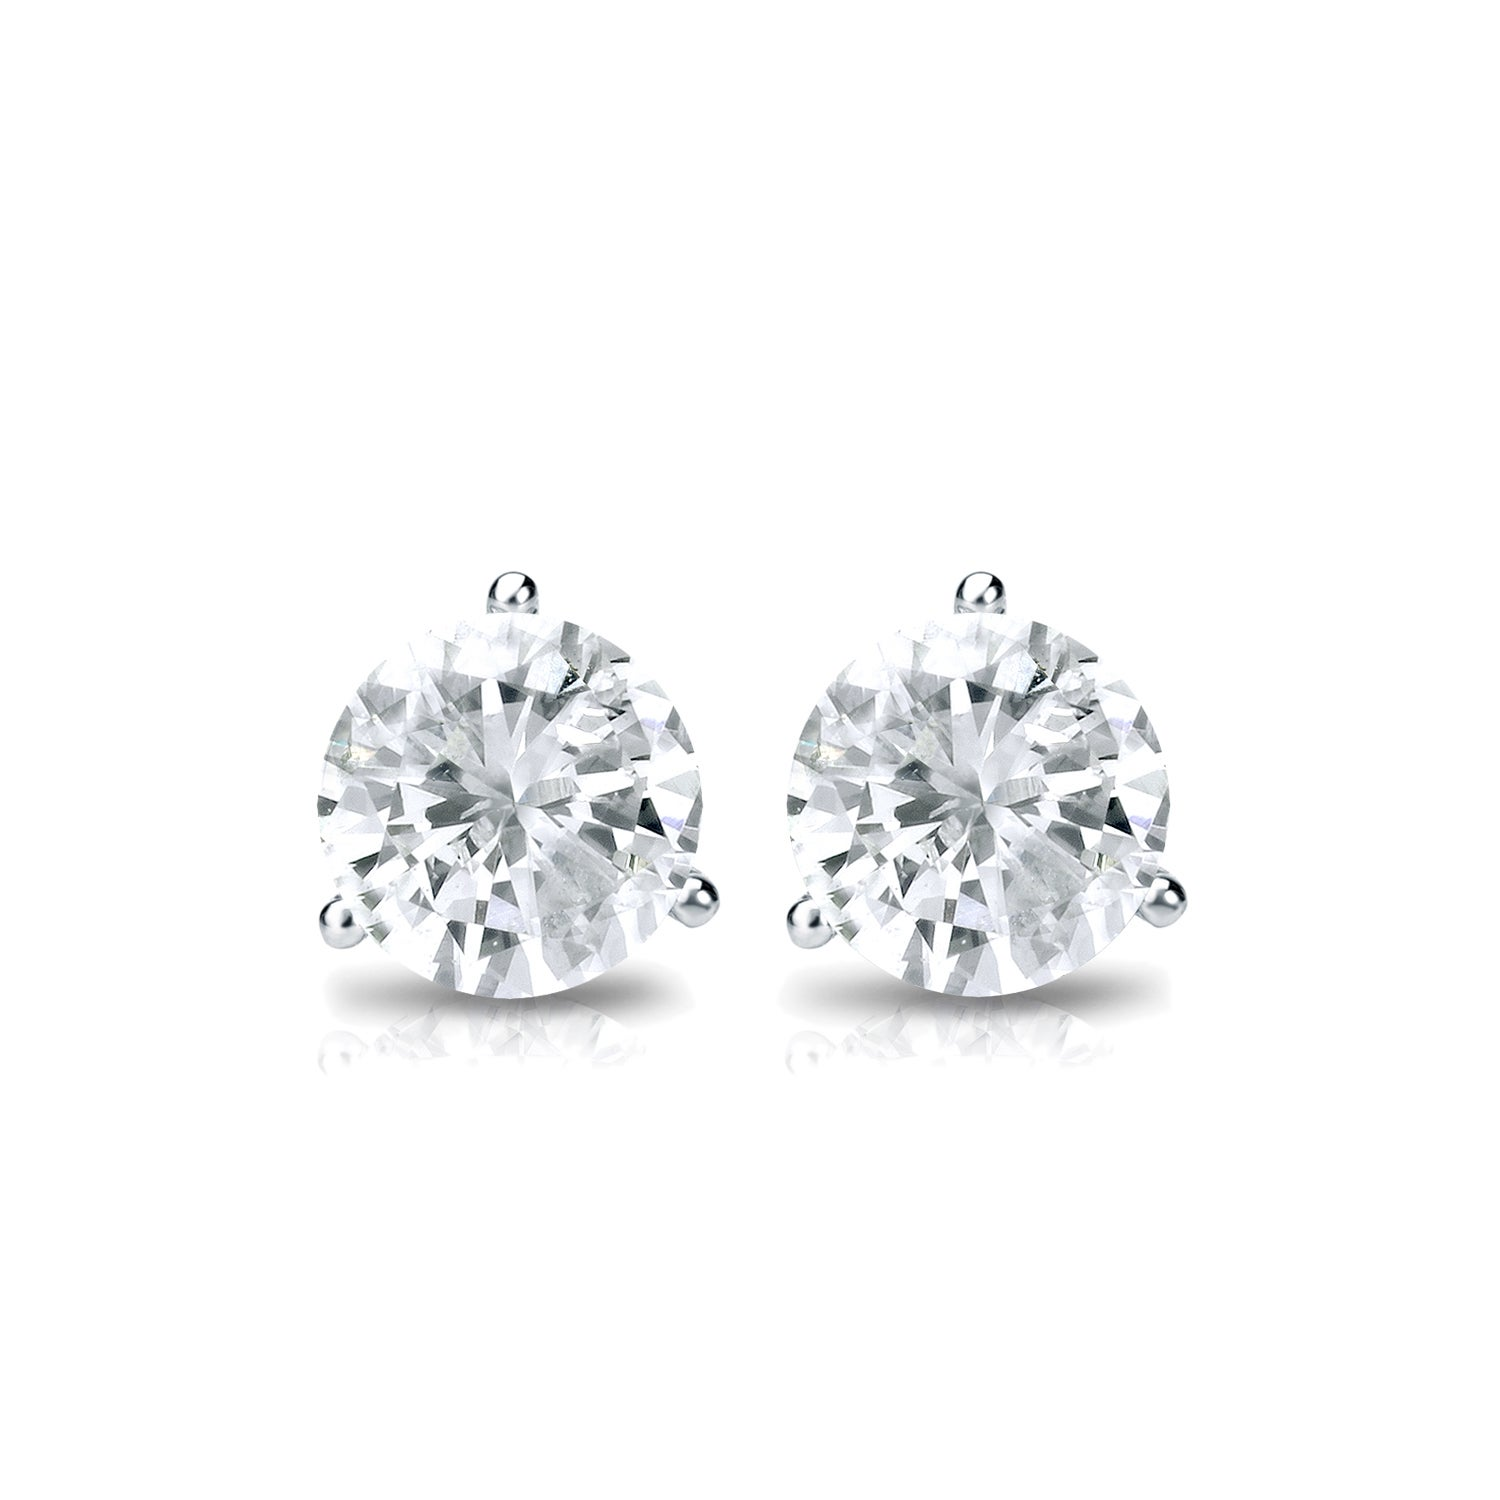 stud round earrings wg image diamond prong martini p pure main lab ignis set grown